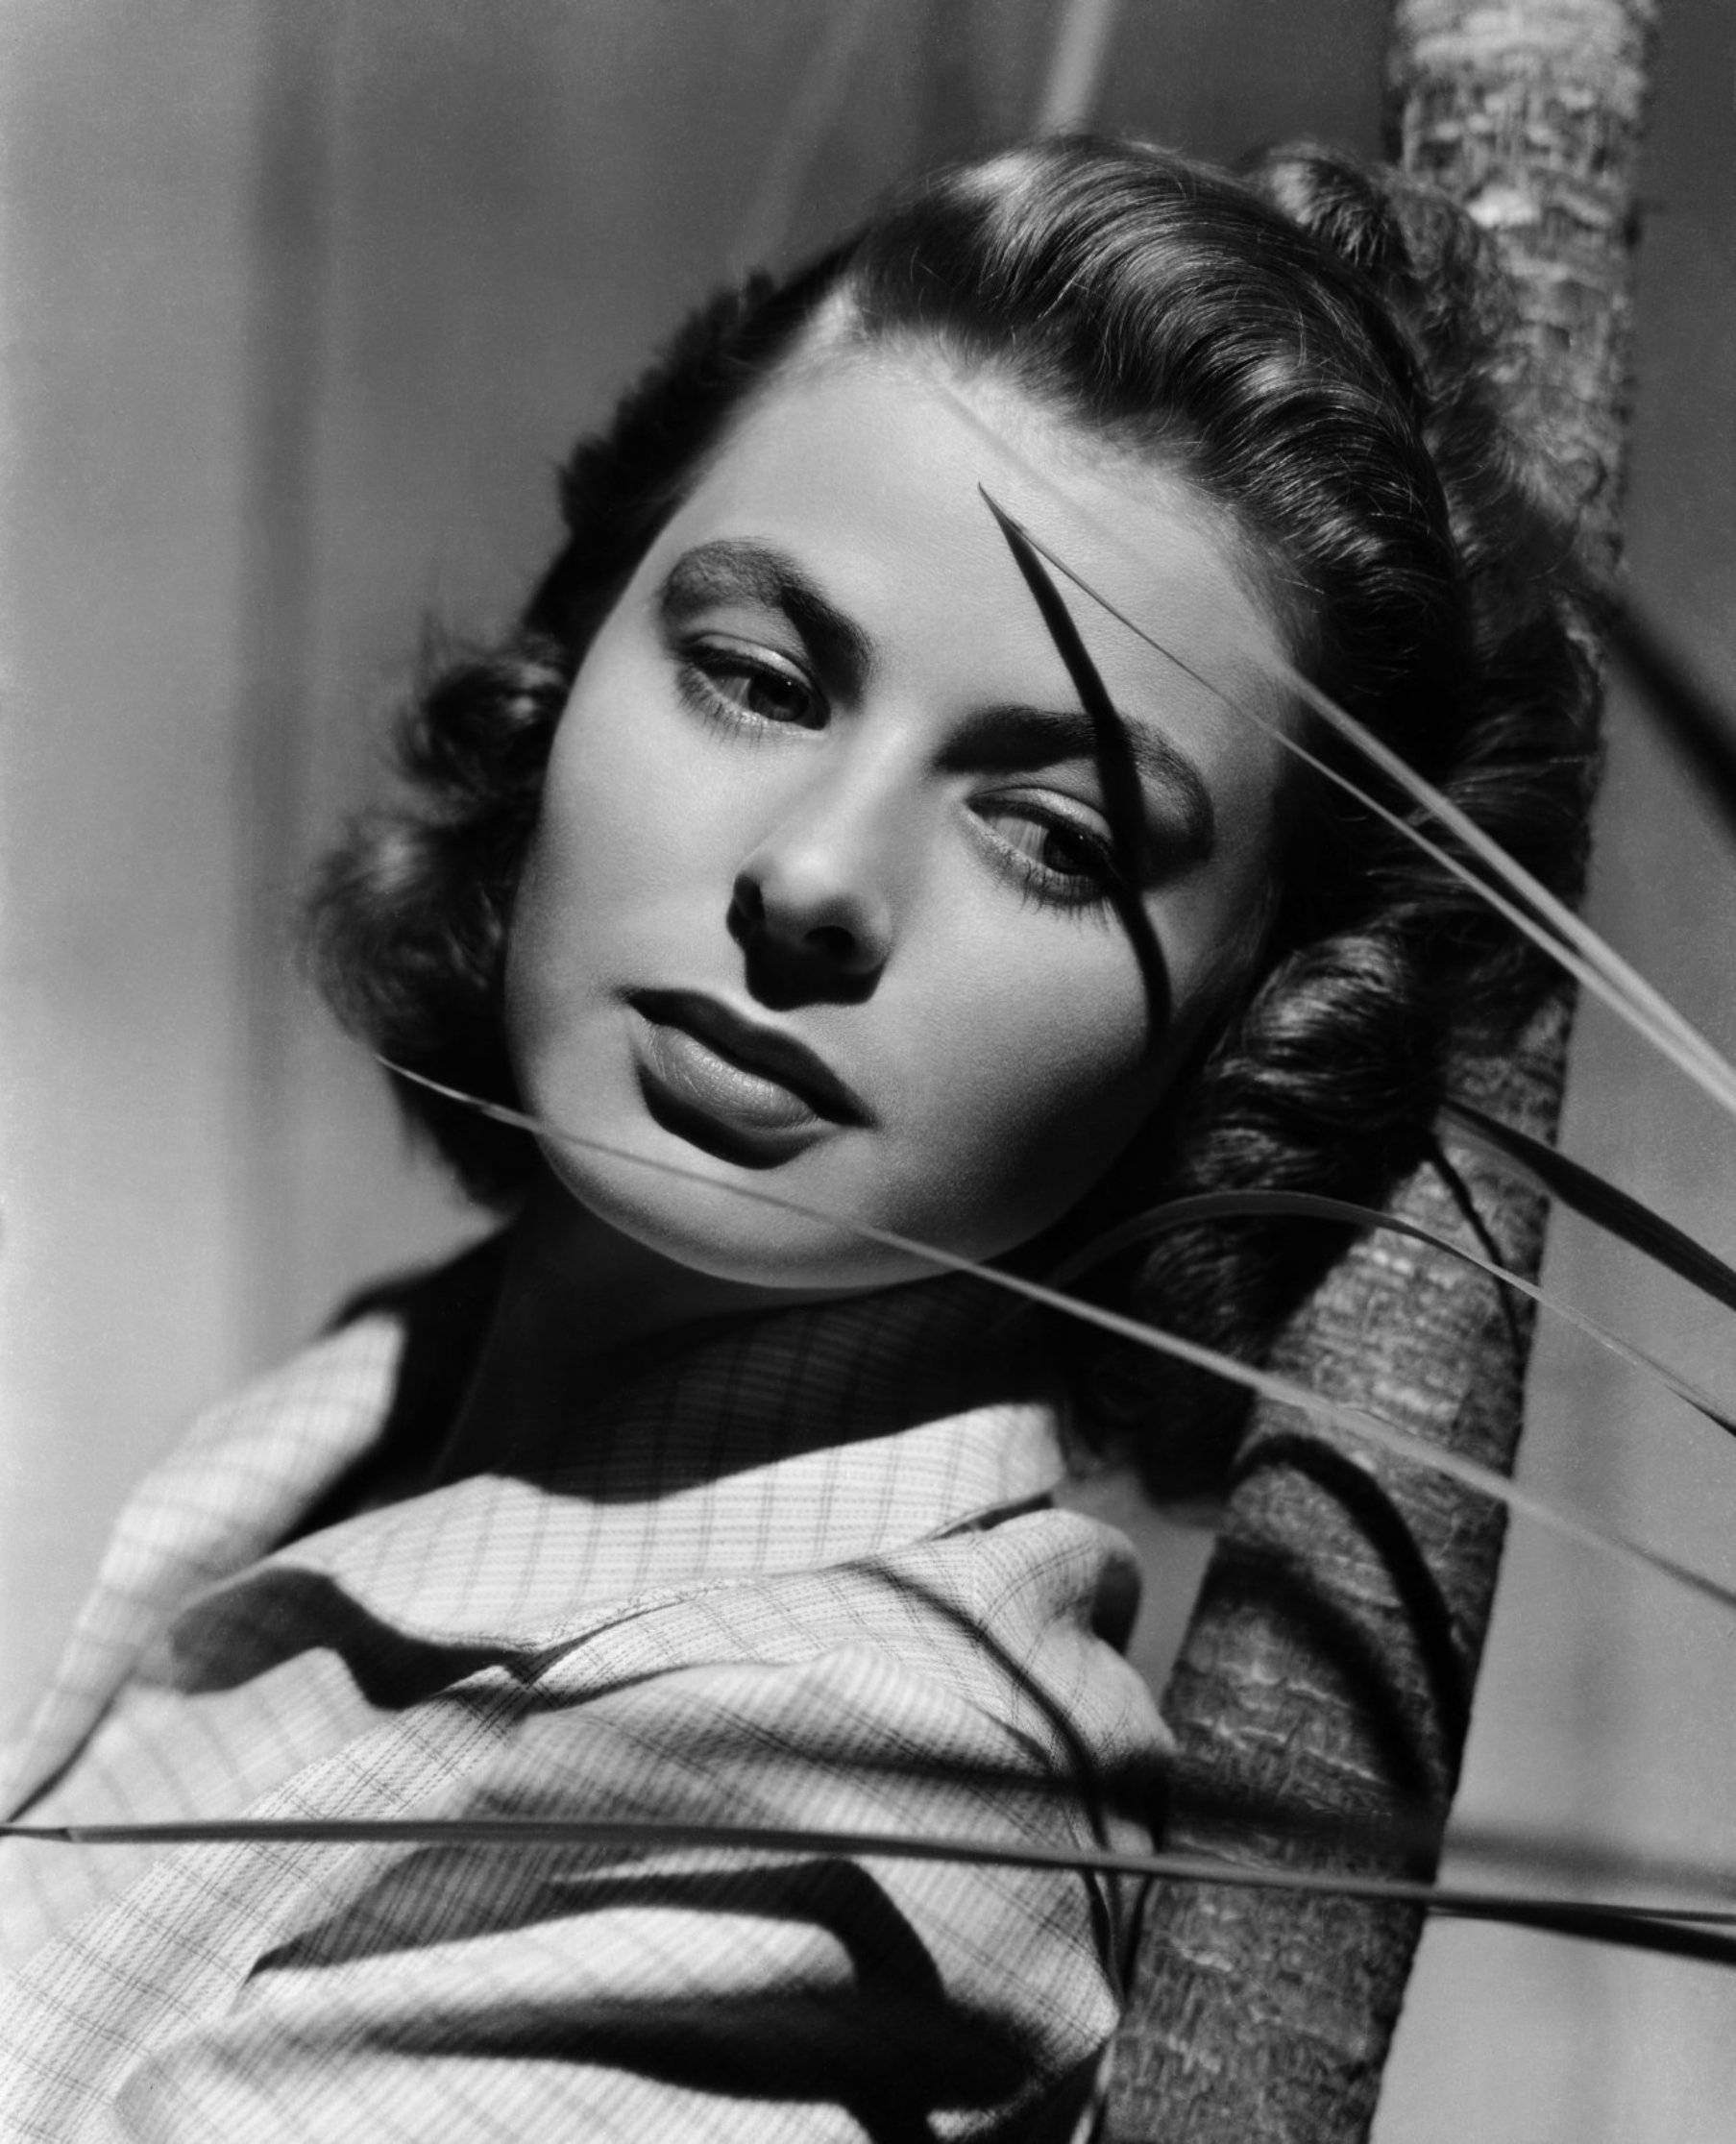 Ingrid Bergman Nude Celebrities Forum Famousboard Com